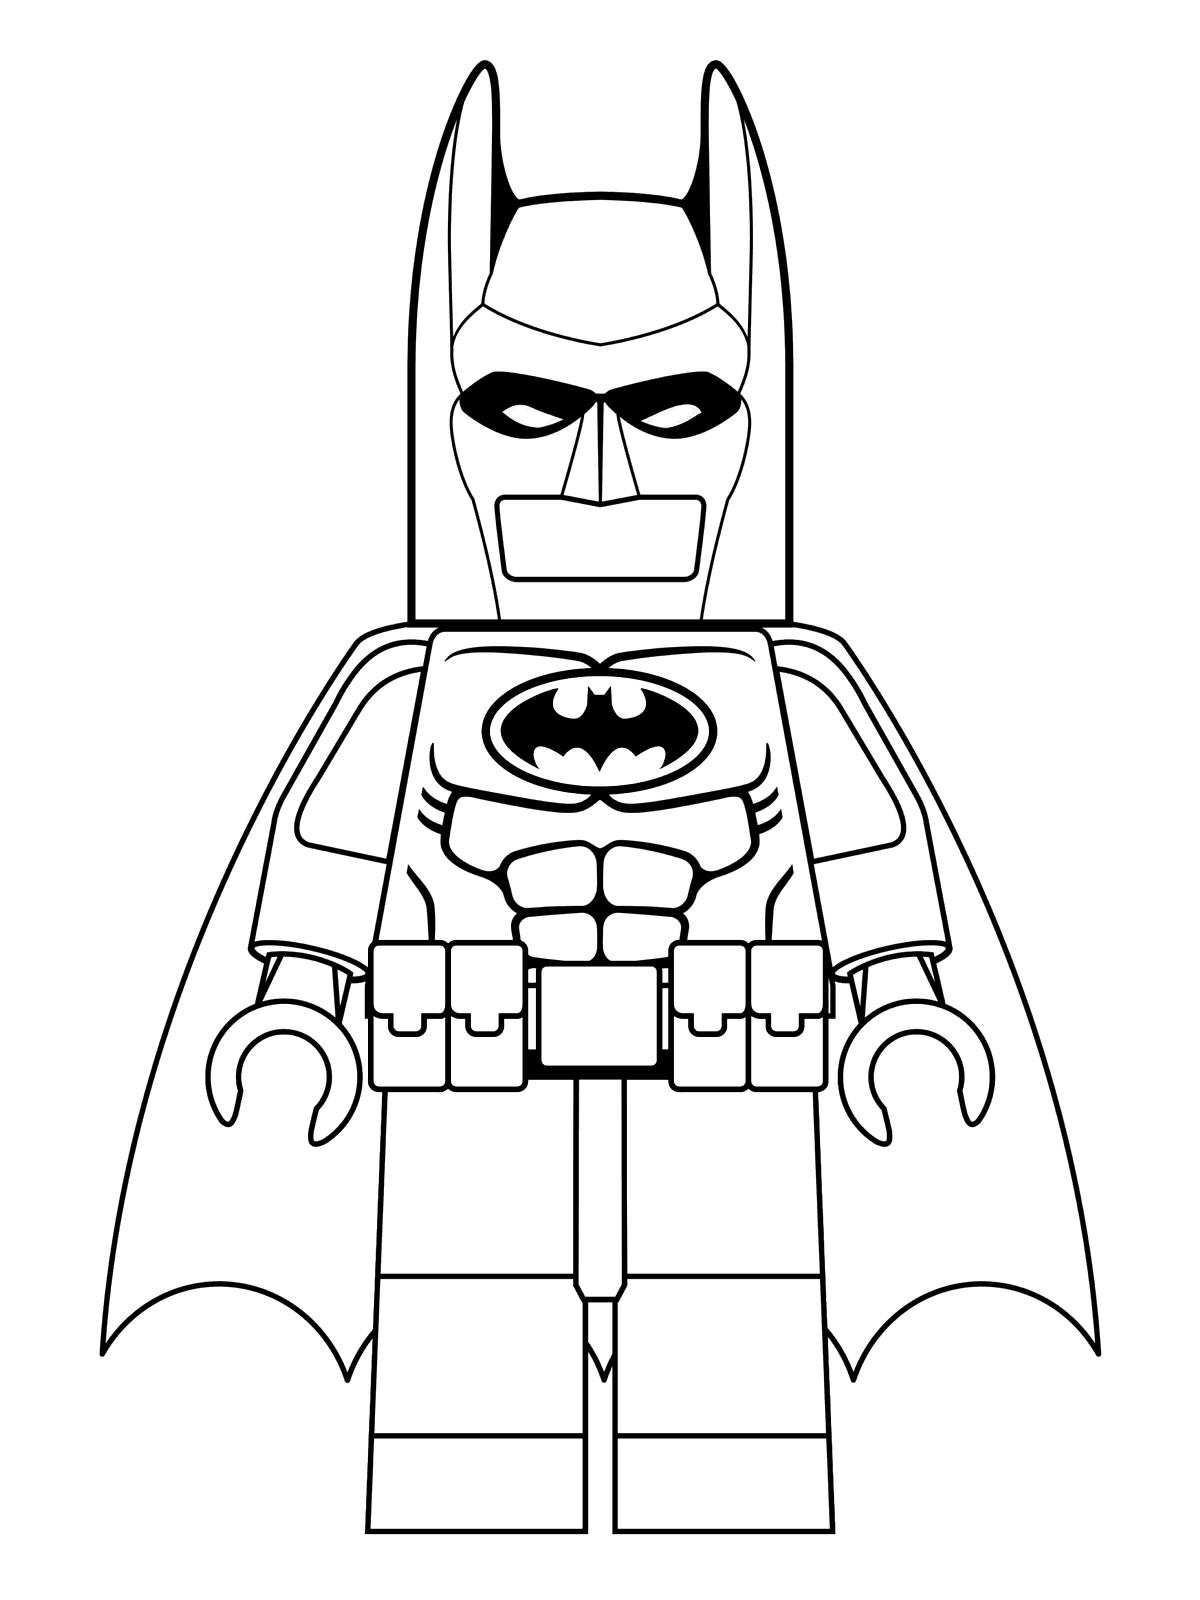 graphic regarding Free Printable Batman Coloring Pages known as Lego Batman Coloring Internet pages - Least complicated Coloring Internet pages For Children